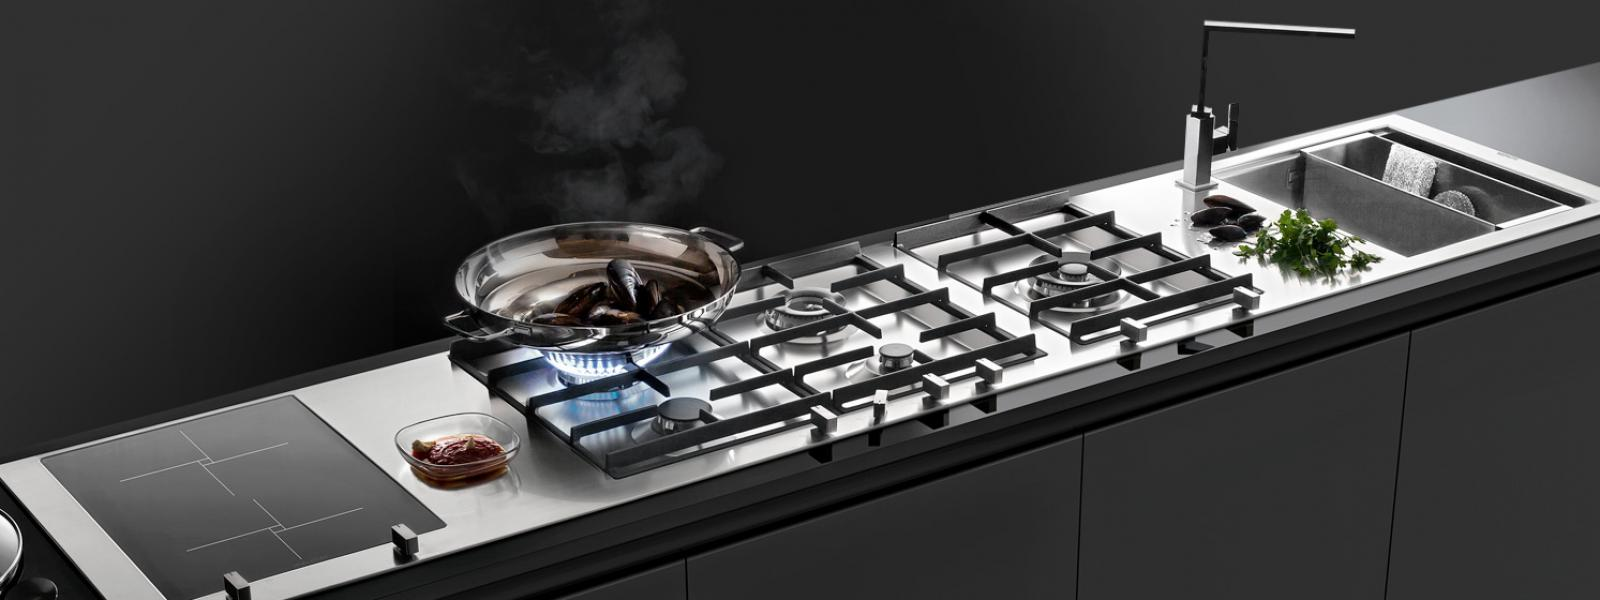 Peninsula Or Island Type Kitchen Kitchen Appliances: Ovens, Hobs, Sinks And Bowls